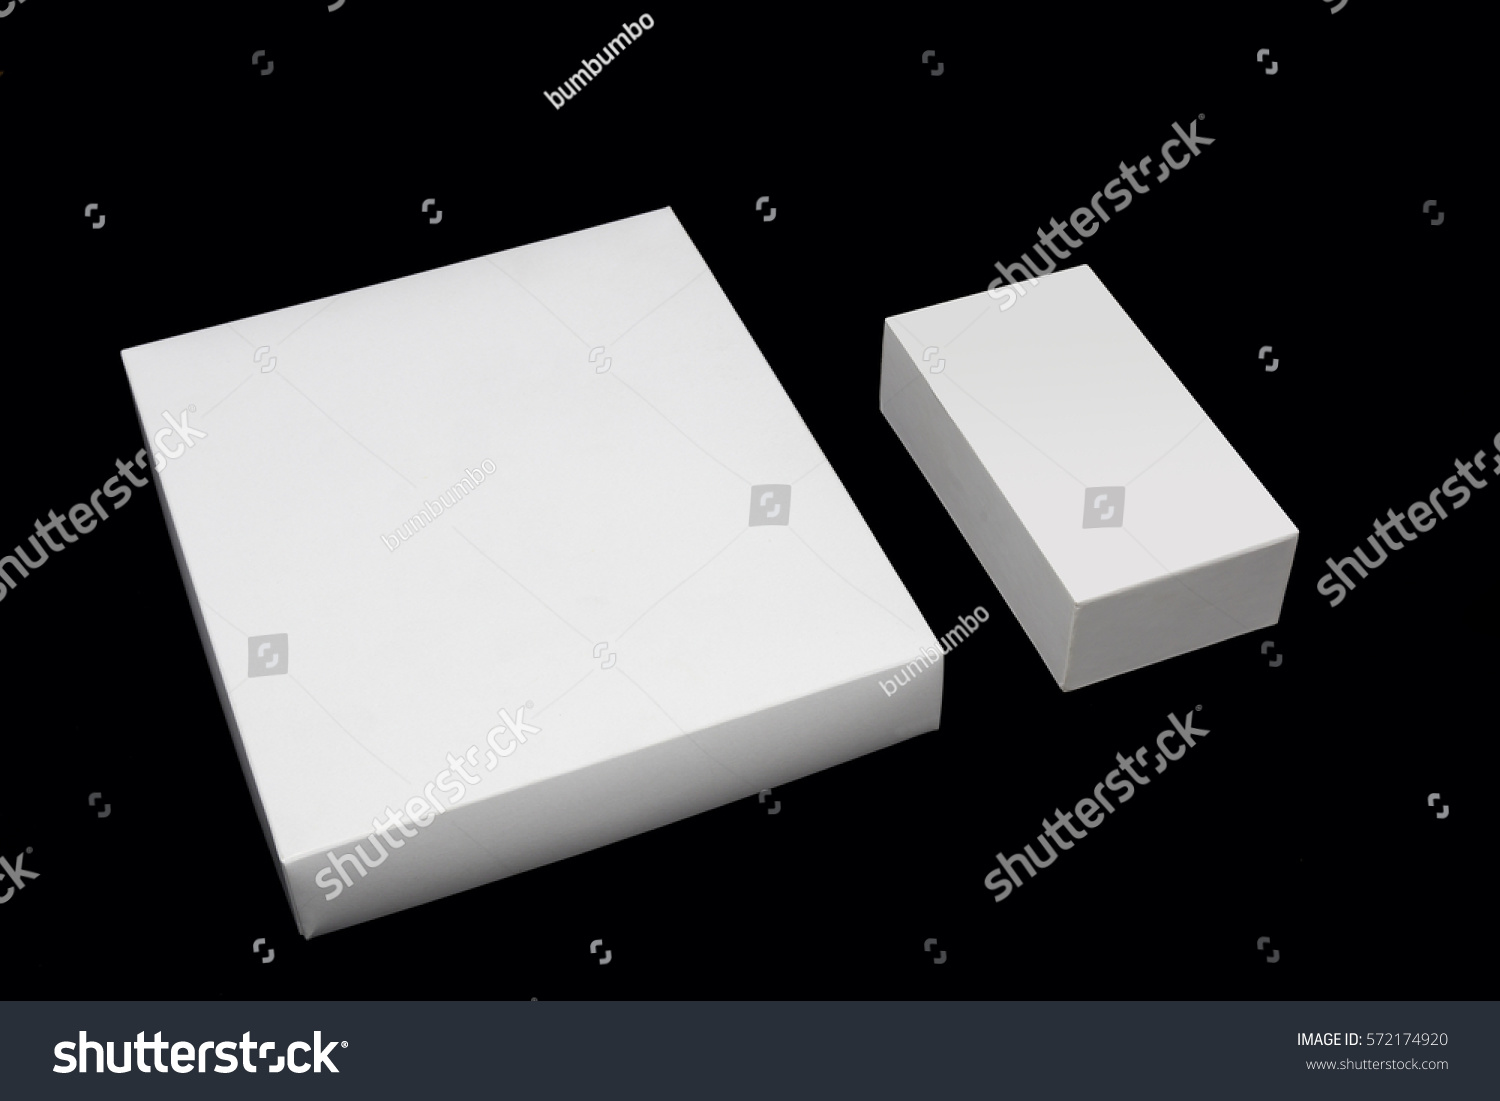 White Box On Black Background Stock Photo 572174920 - Shutterstock